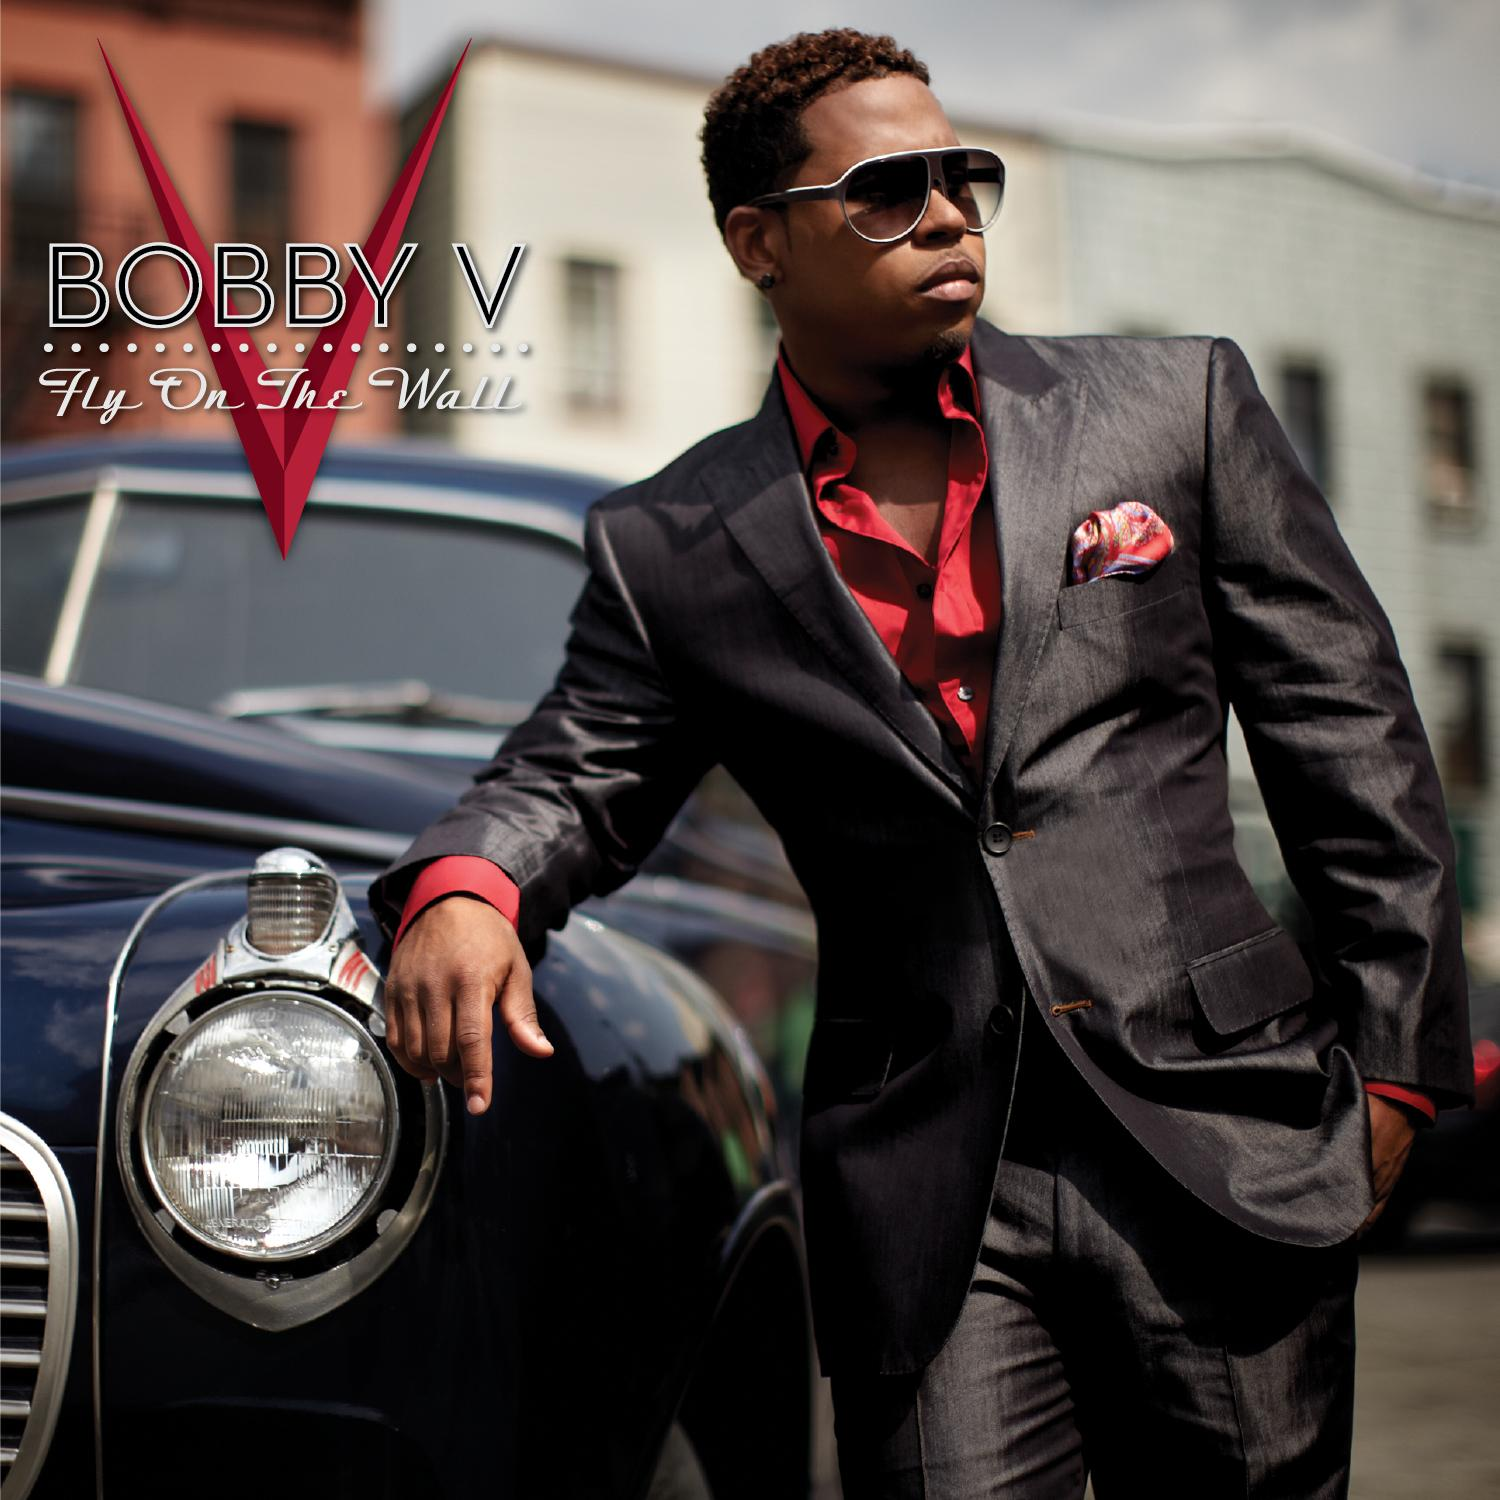 Bobby V Fly on the Wall Album Cover